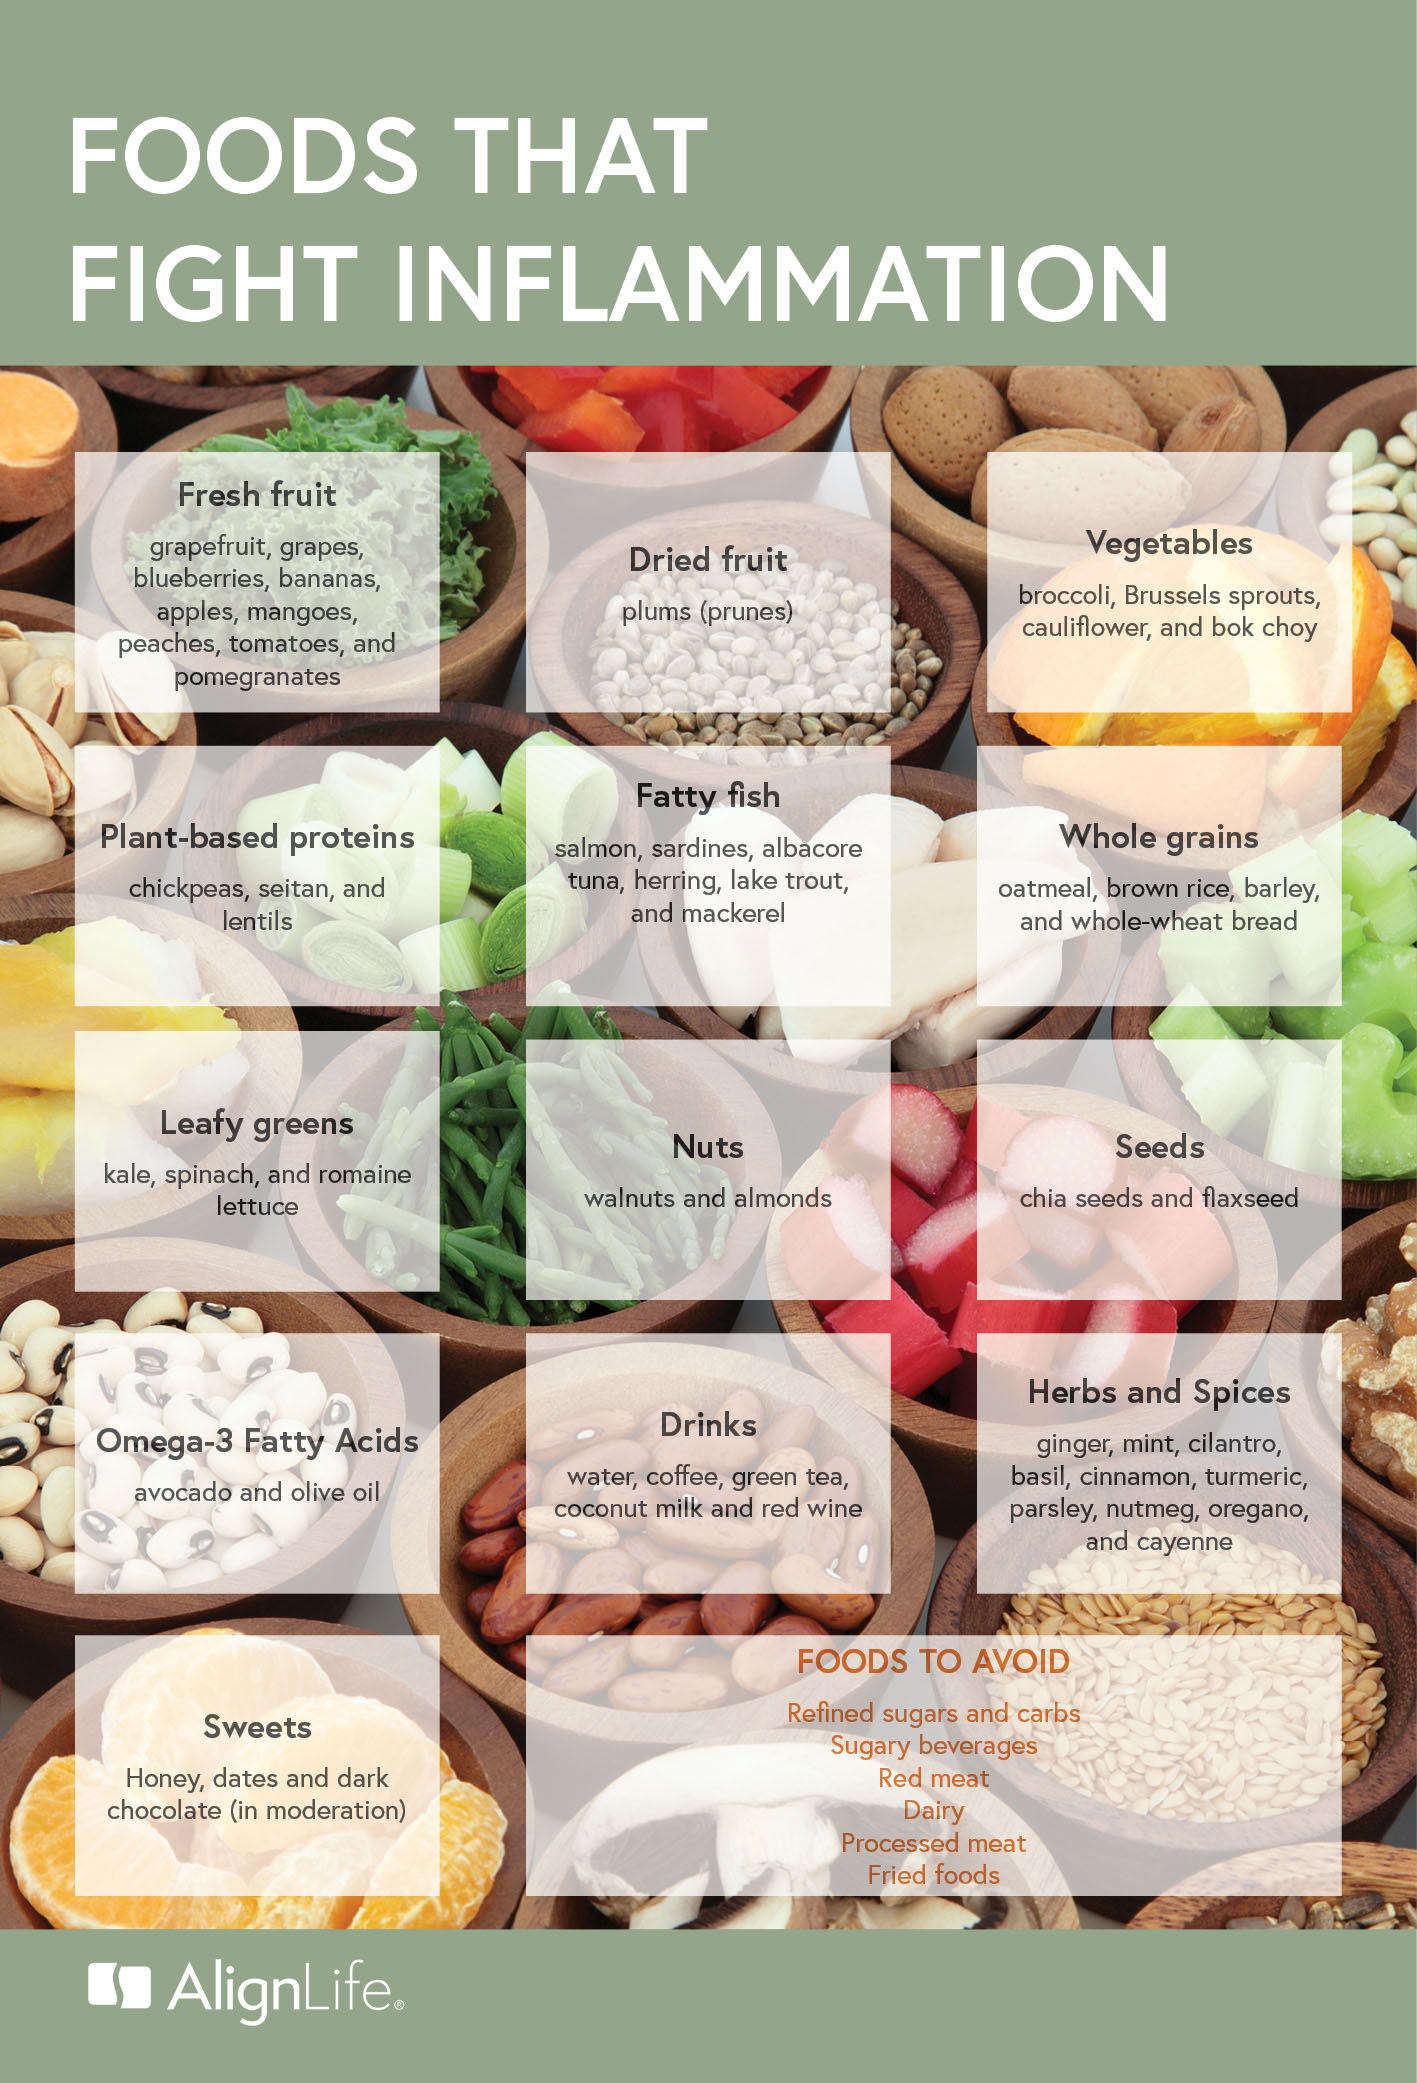 Top Anti-inflammatory Foods - Foods that Fight Inflammation - AlignLife.com